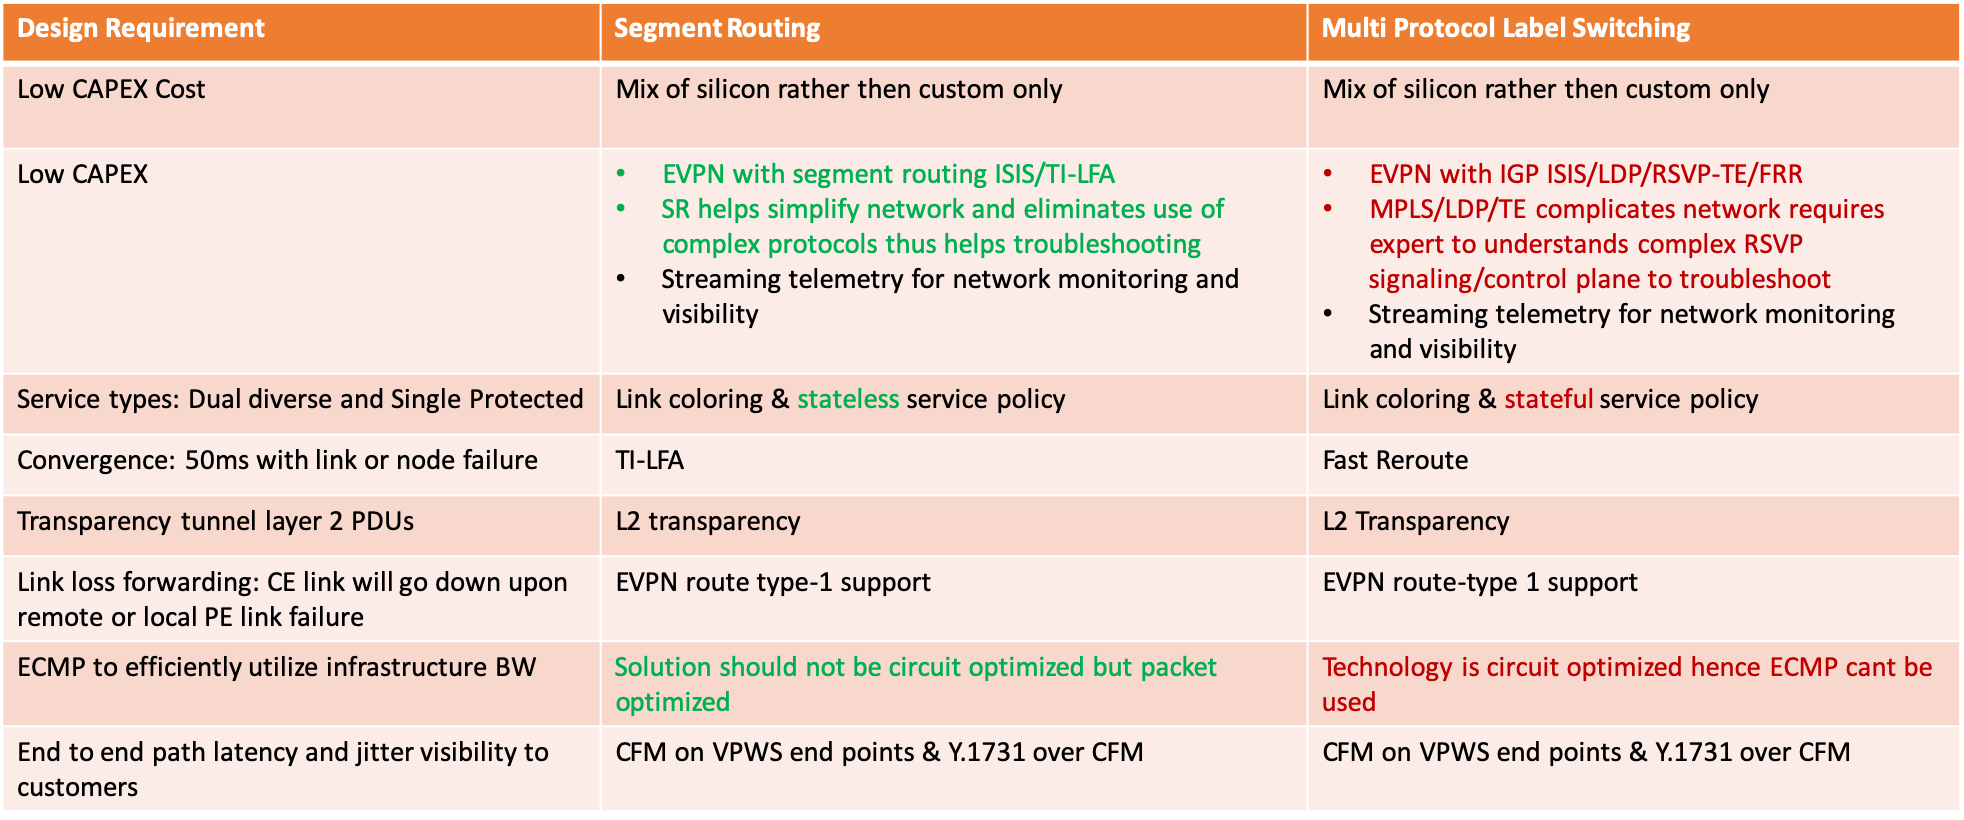 Service requirement and design decisions for Use case 1 - Offering legacy TDM services over a packet switching network Infrastructure